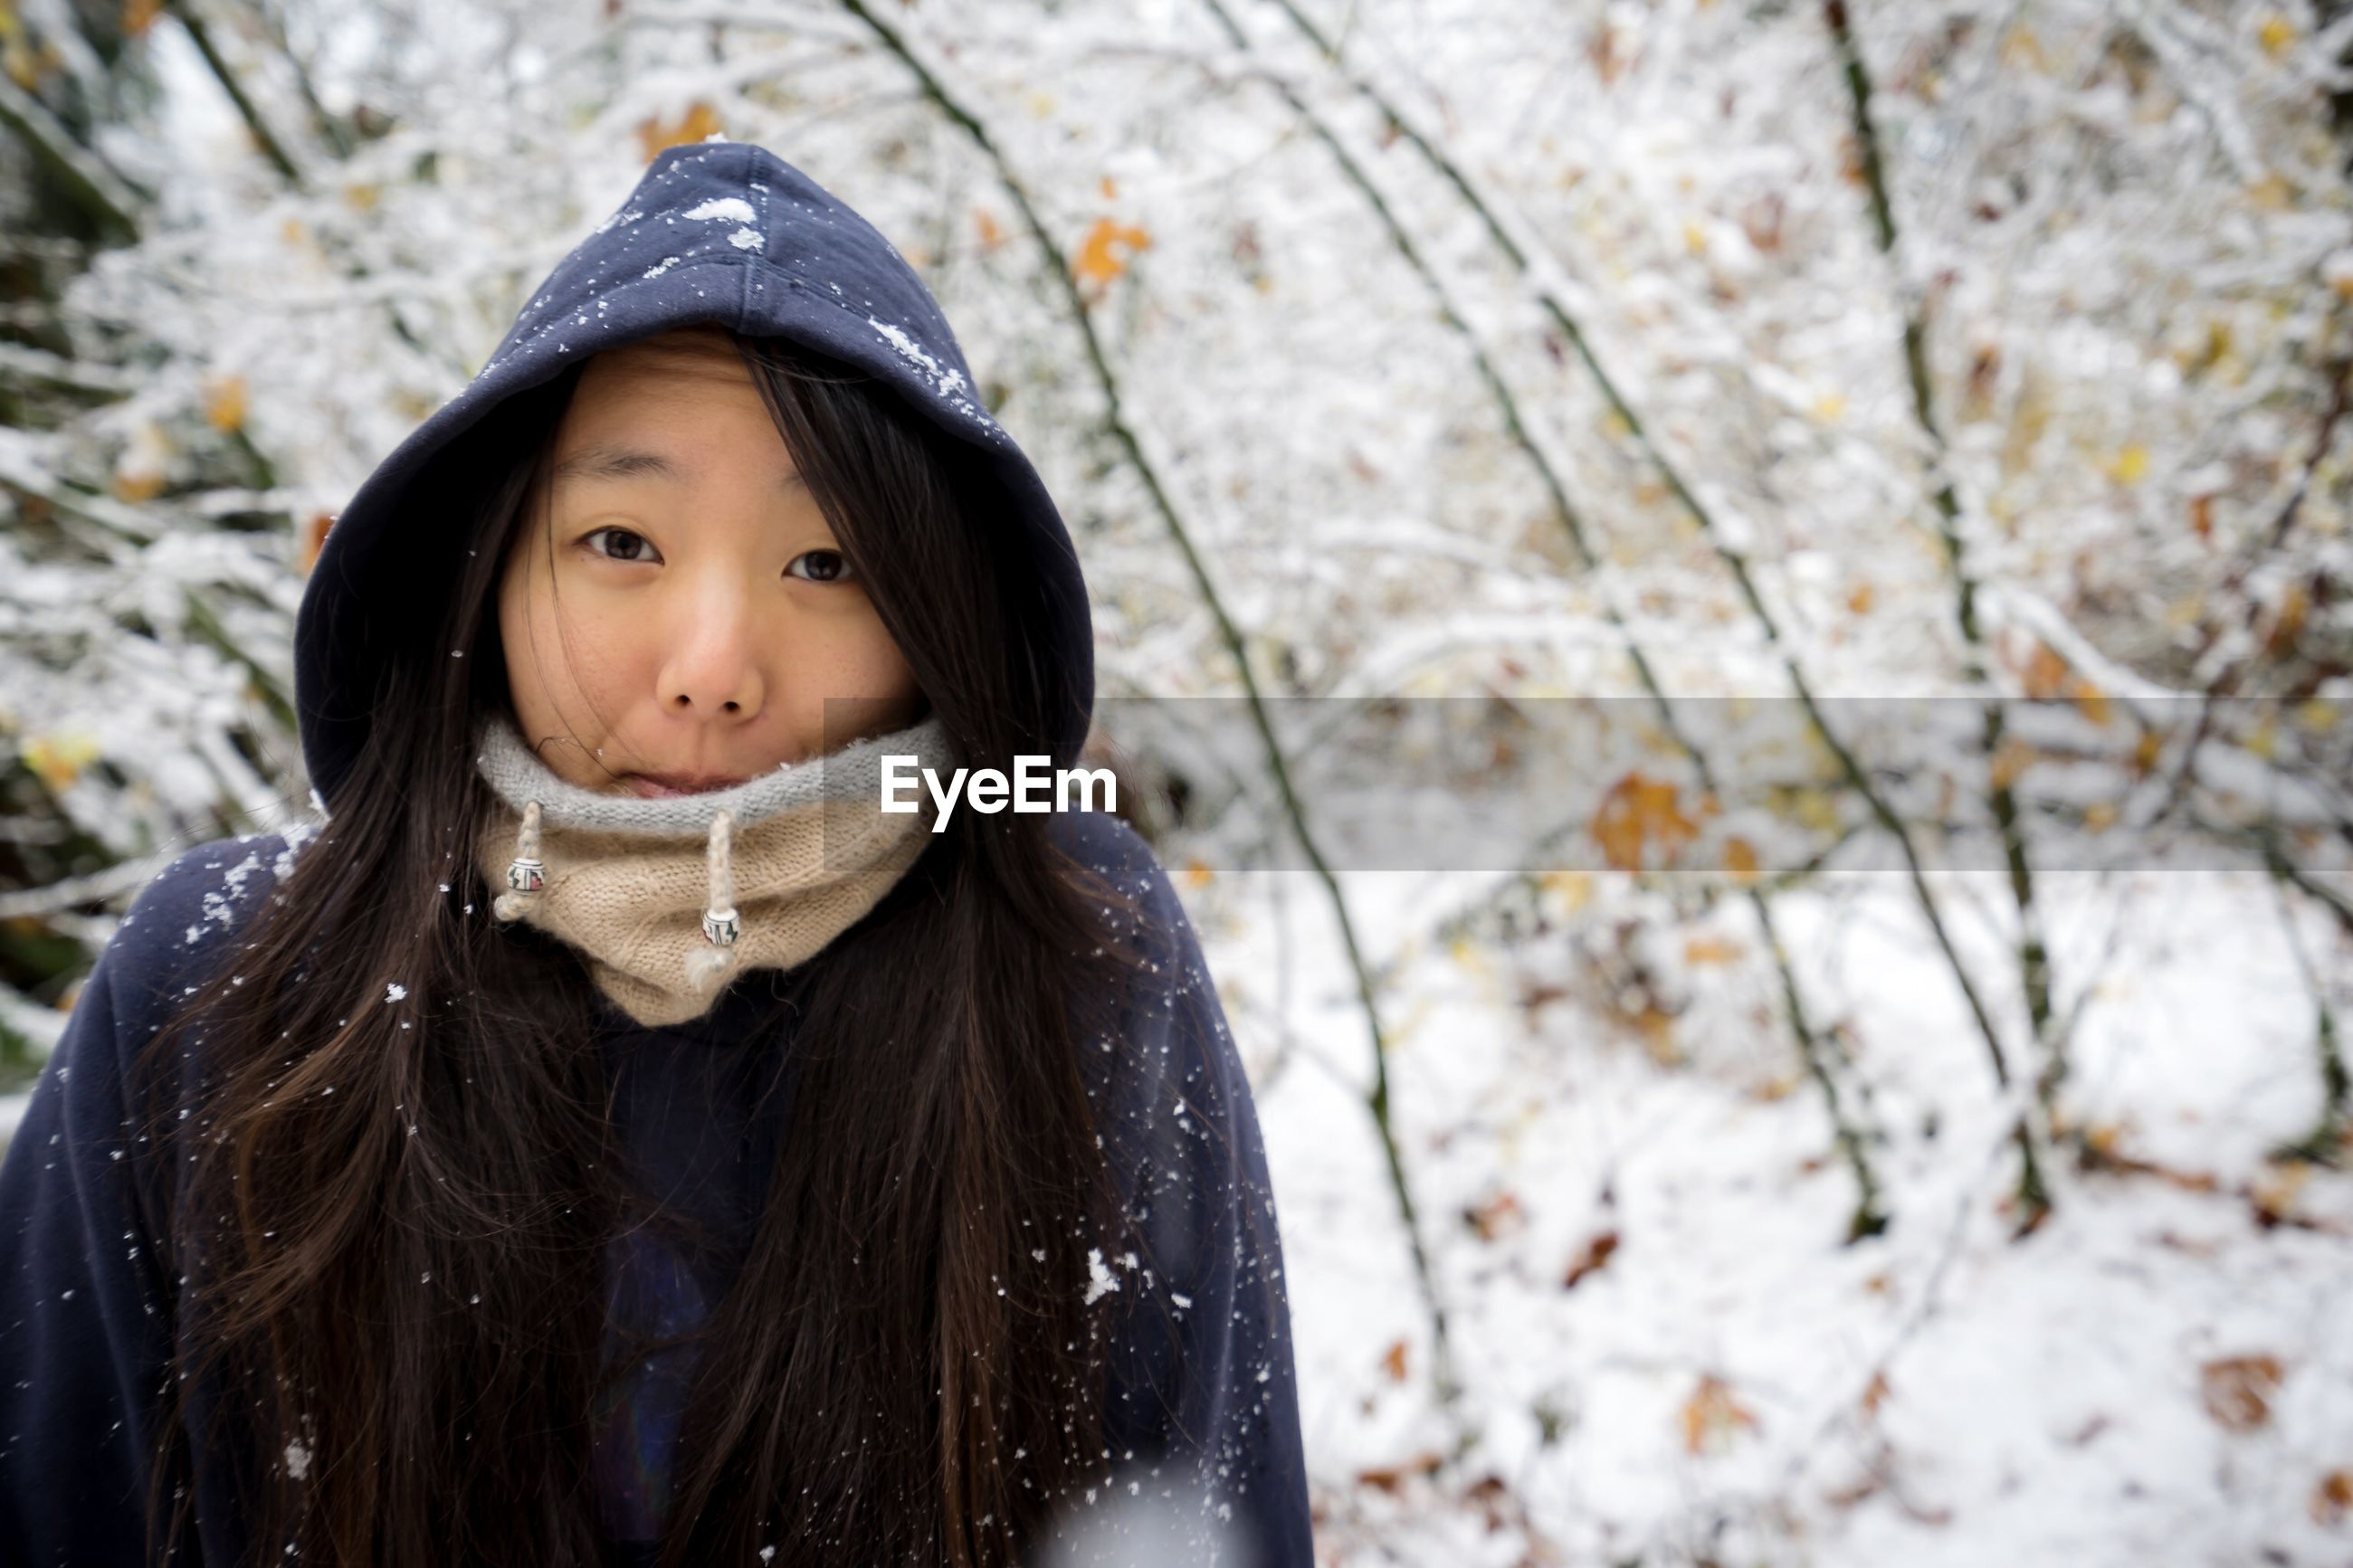 Portrait of woman wearing hood while standing in snow